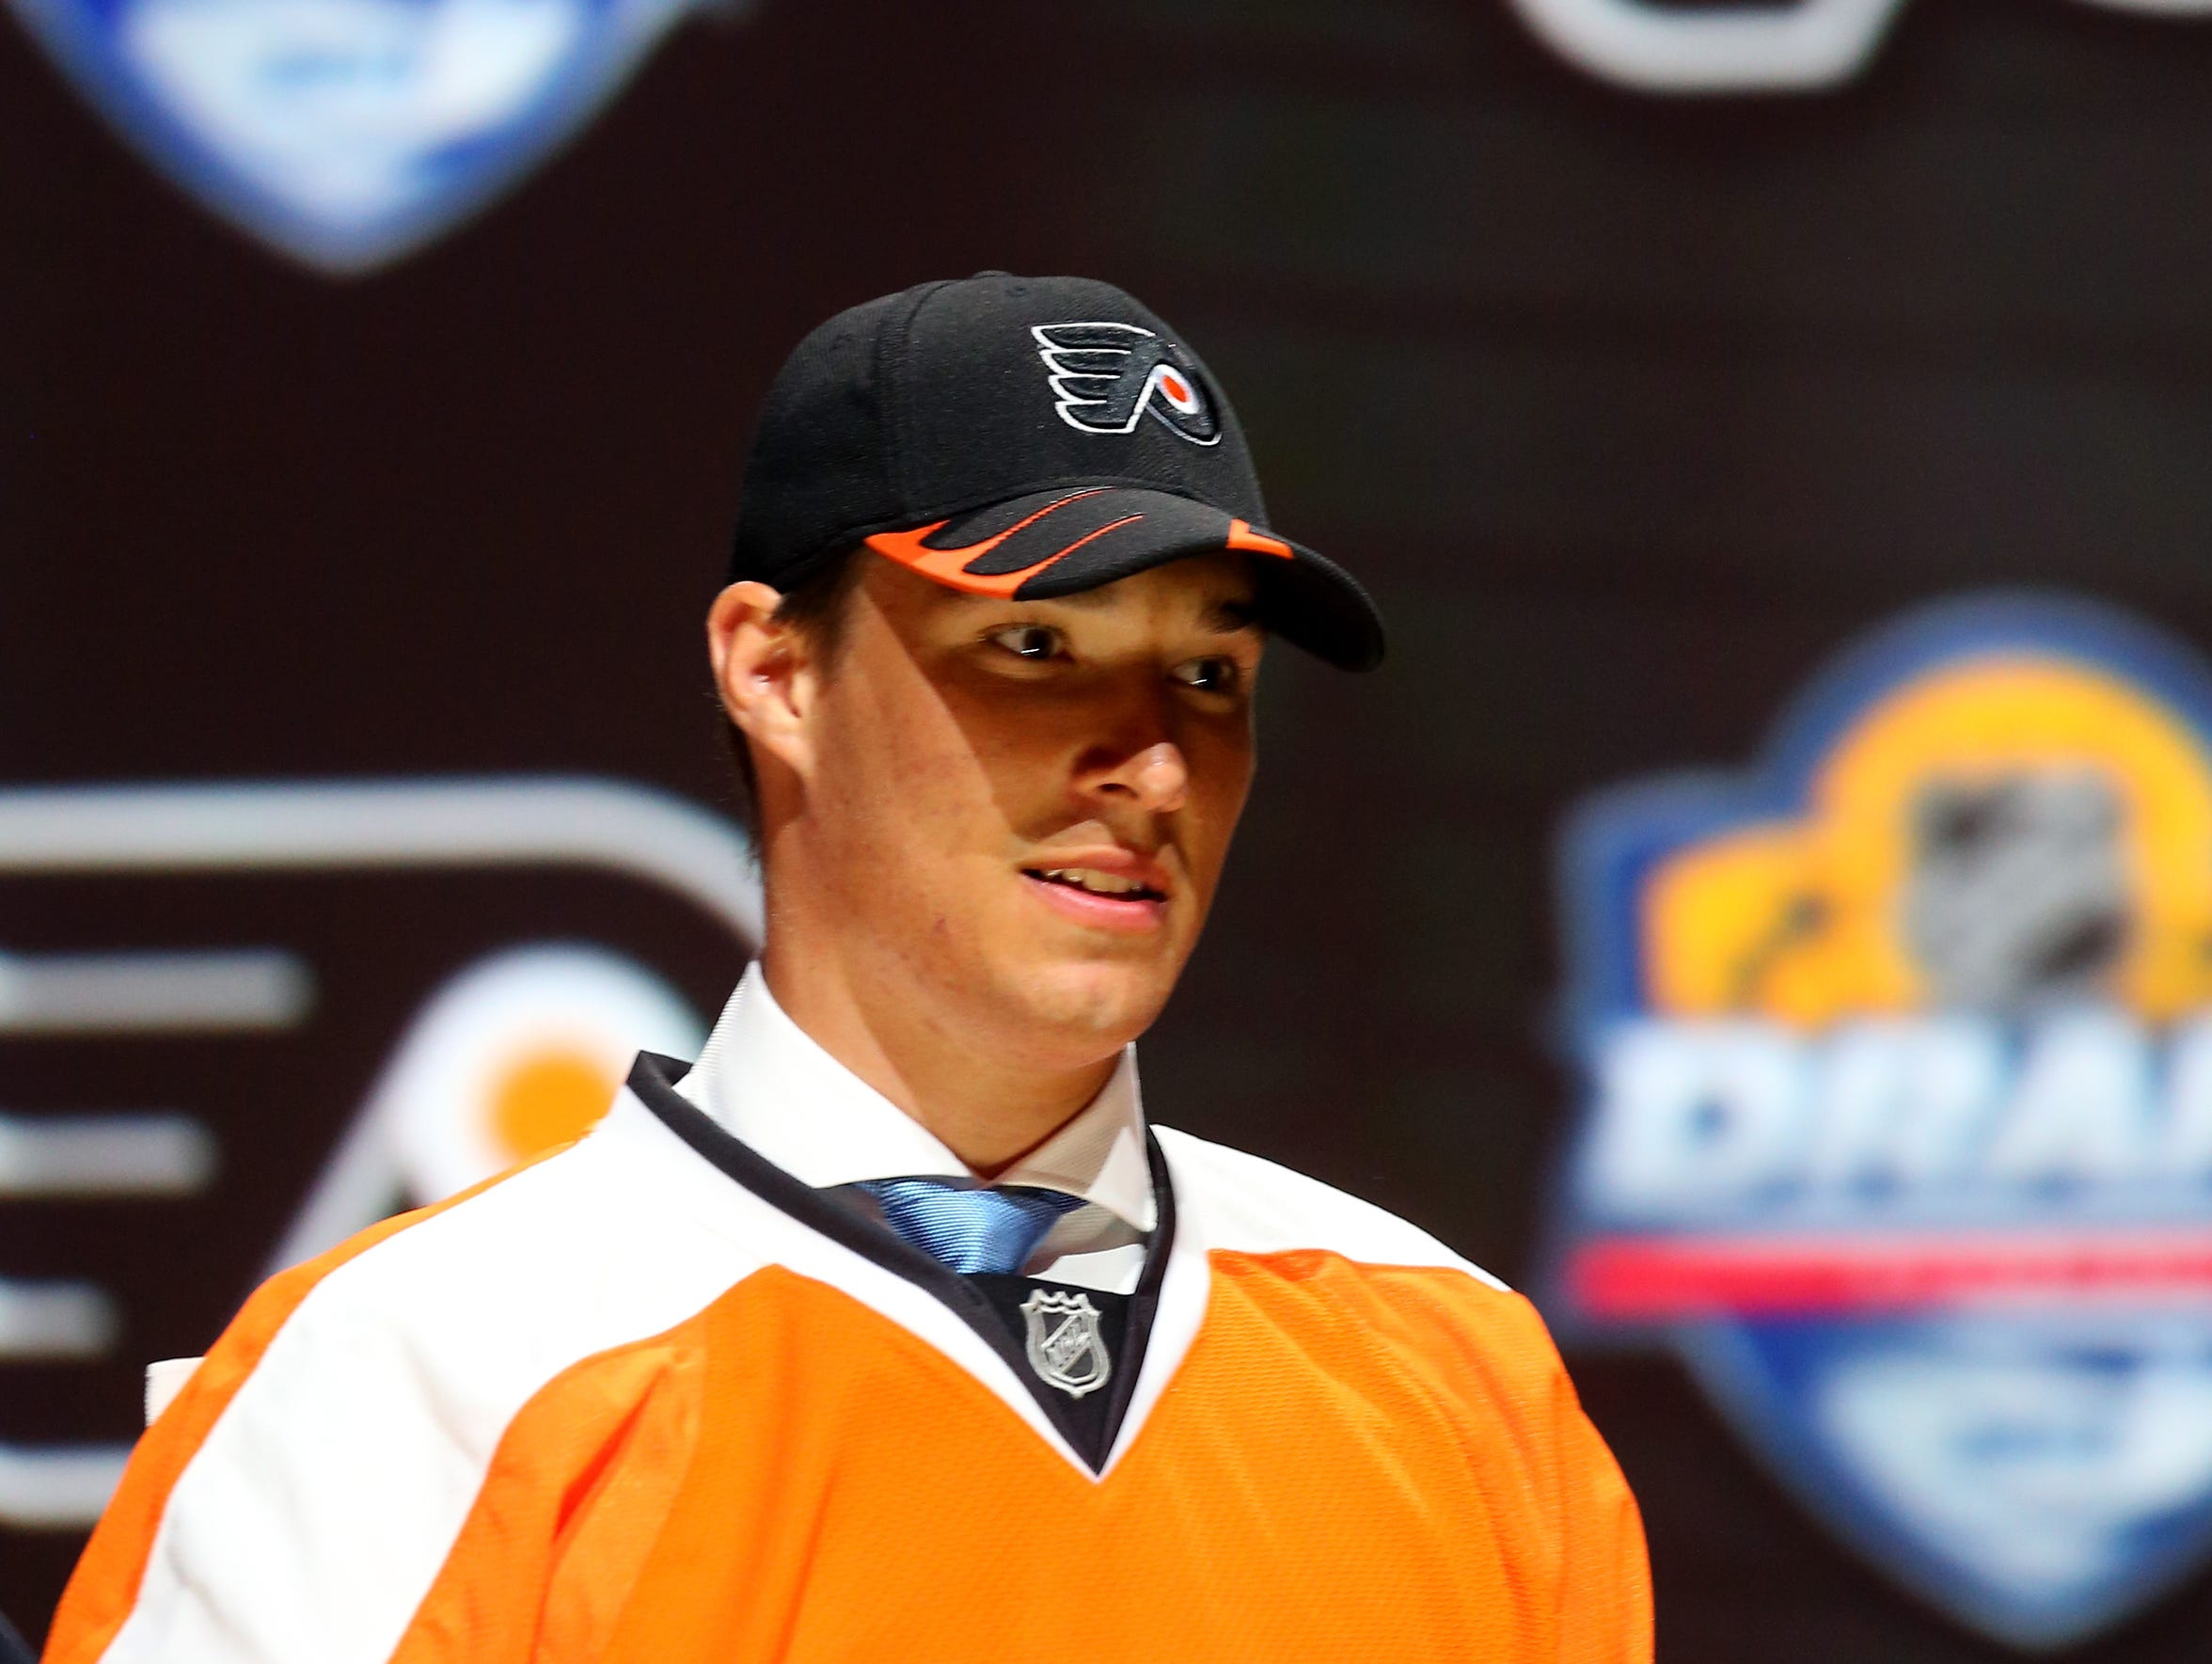 The Flyers selected Ivan Provorov seventh overall in